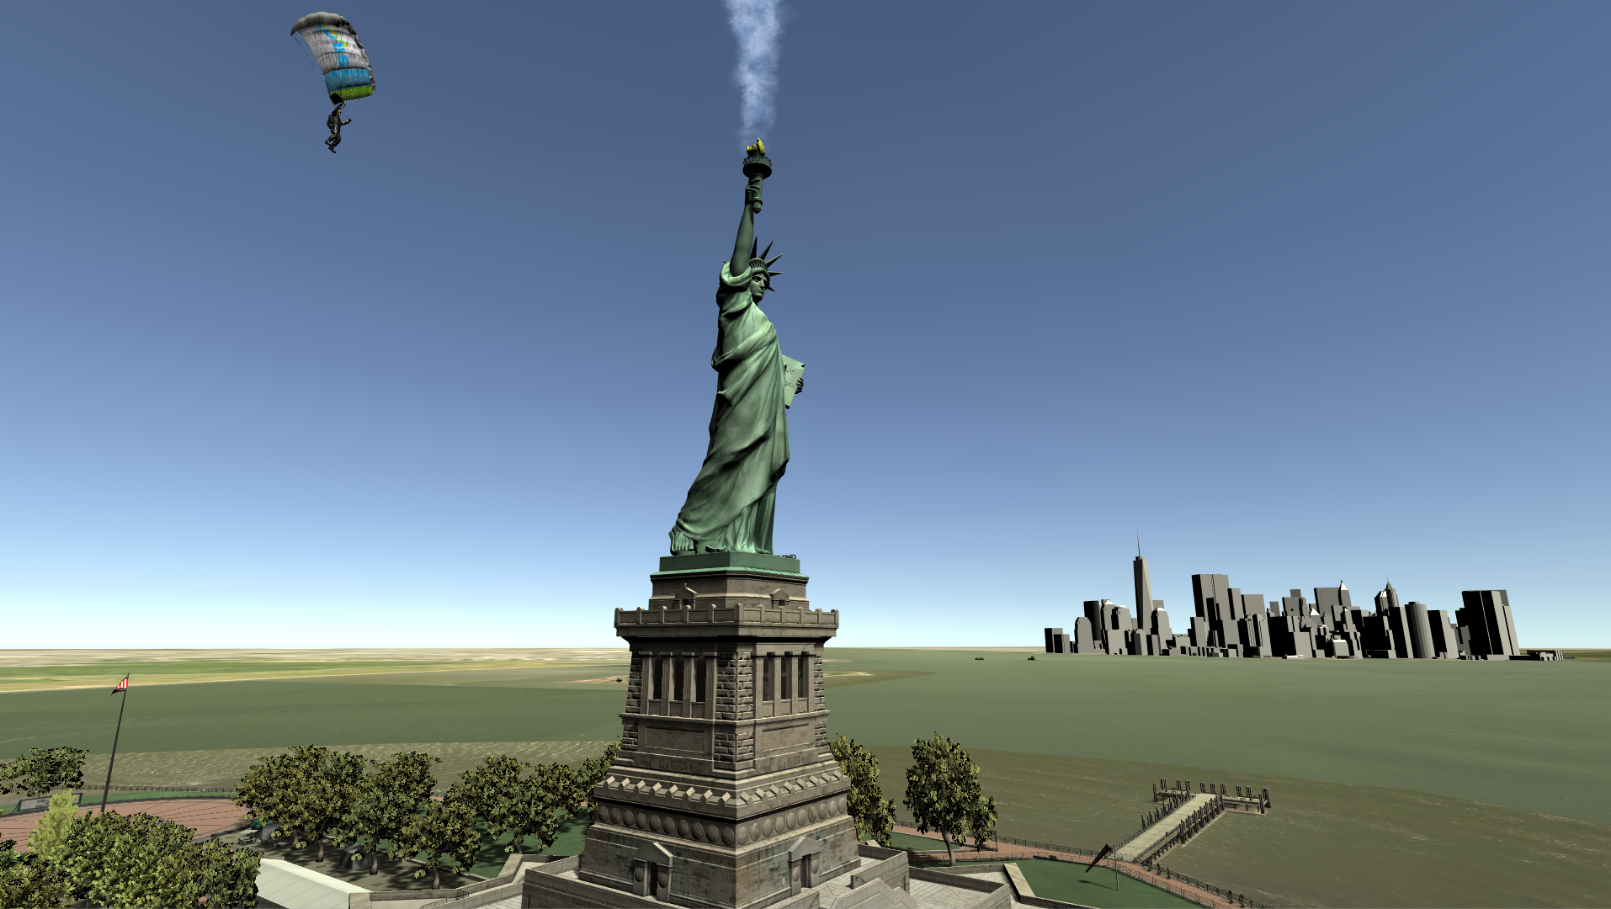 A robot skydiver passing by the Statue of Liberty